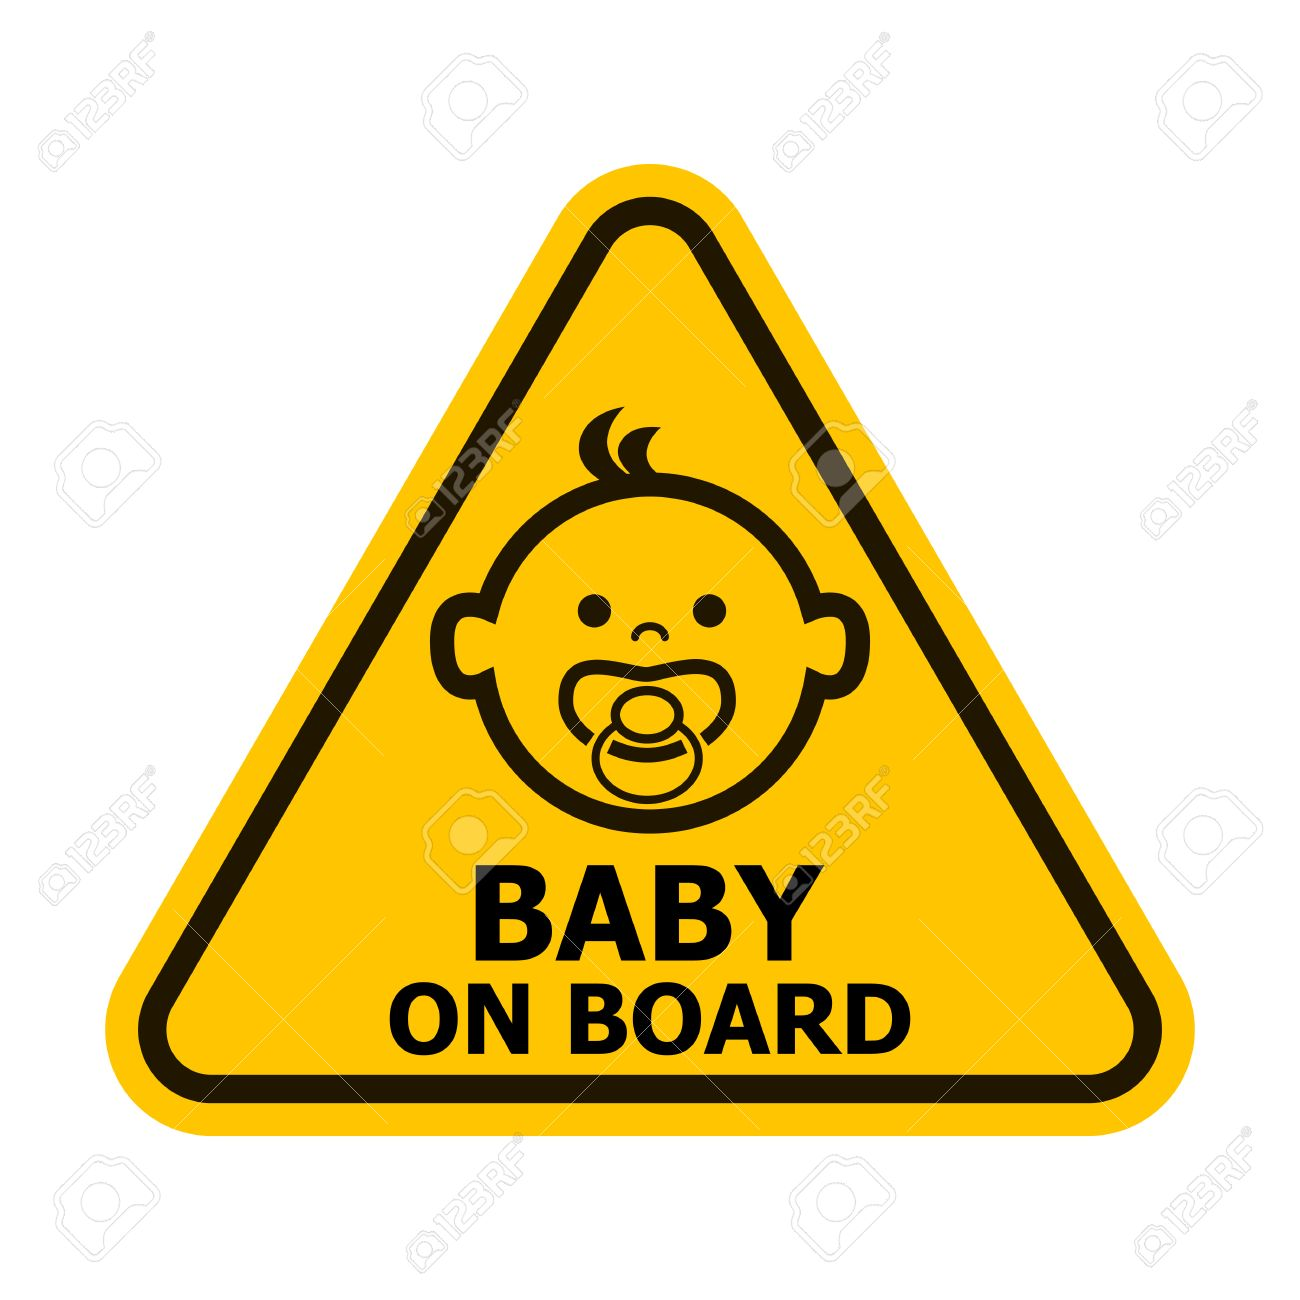 Baby on board yellow sign. Vector illustration. - 42773205